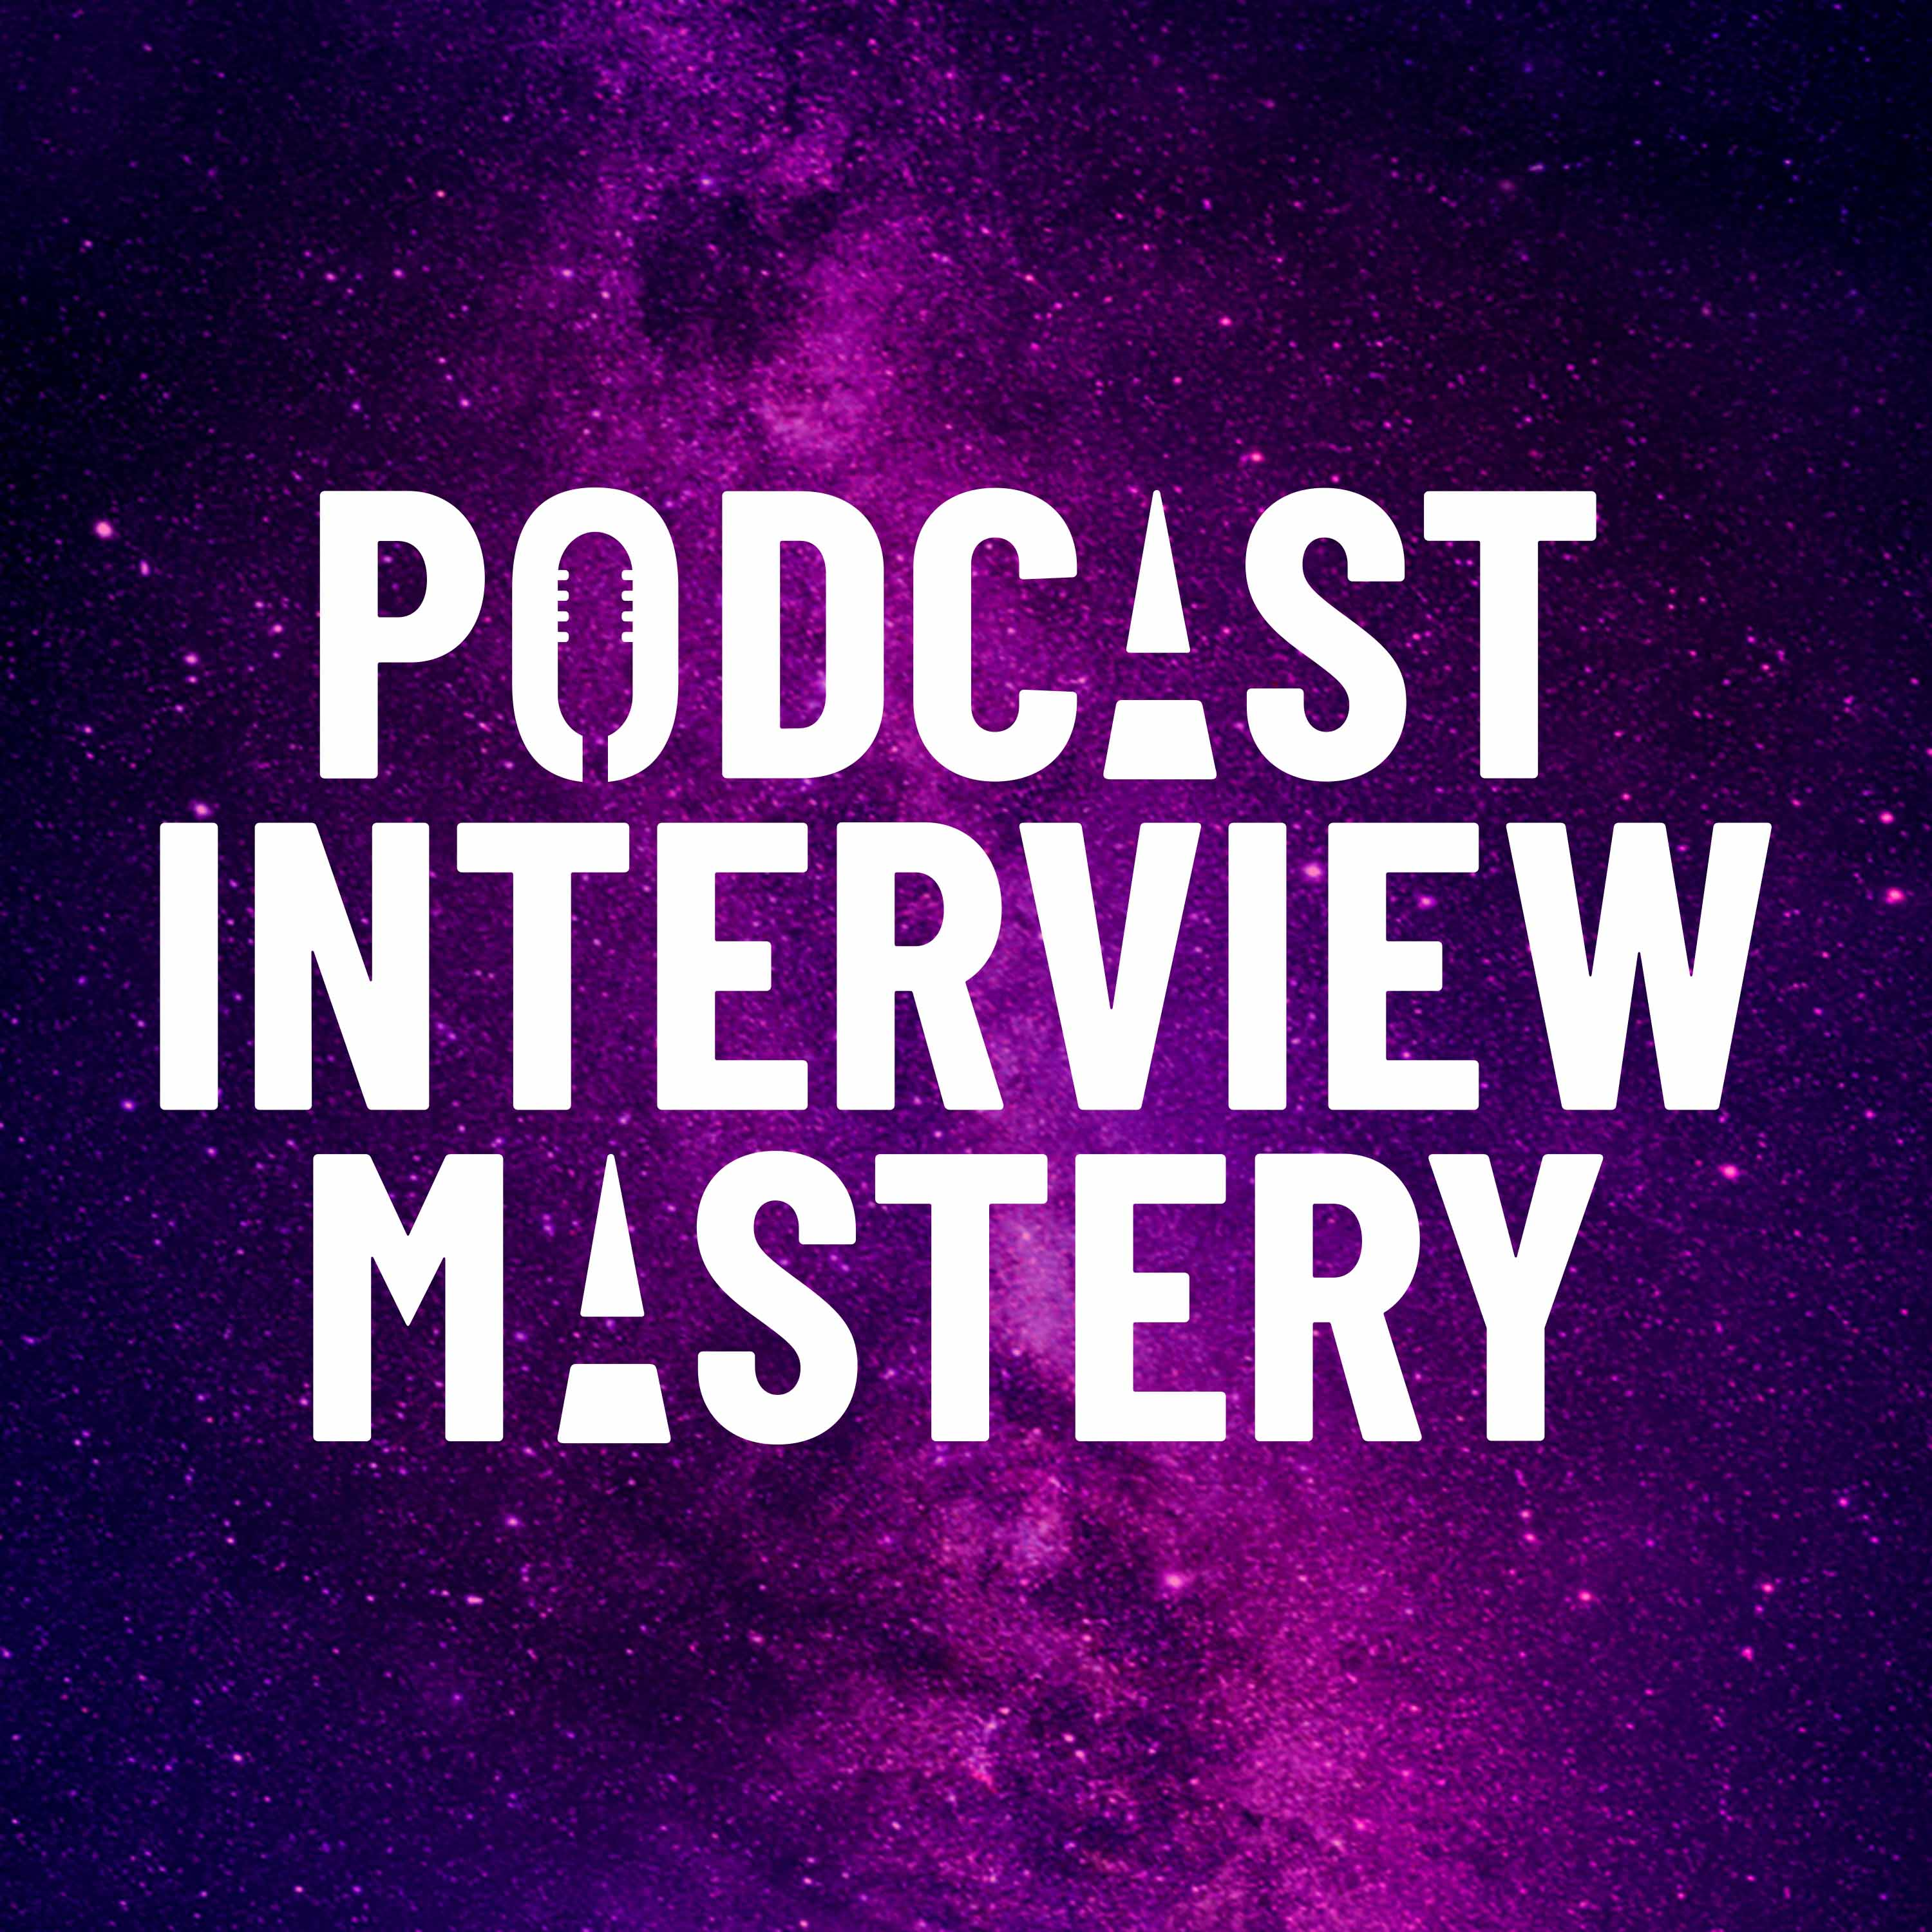 Podcast Interview Mastery